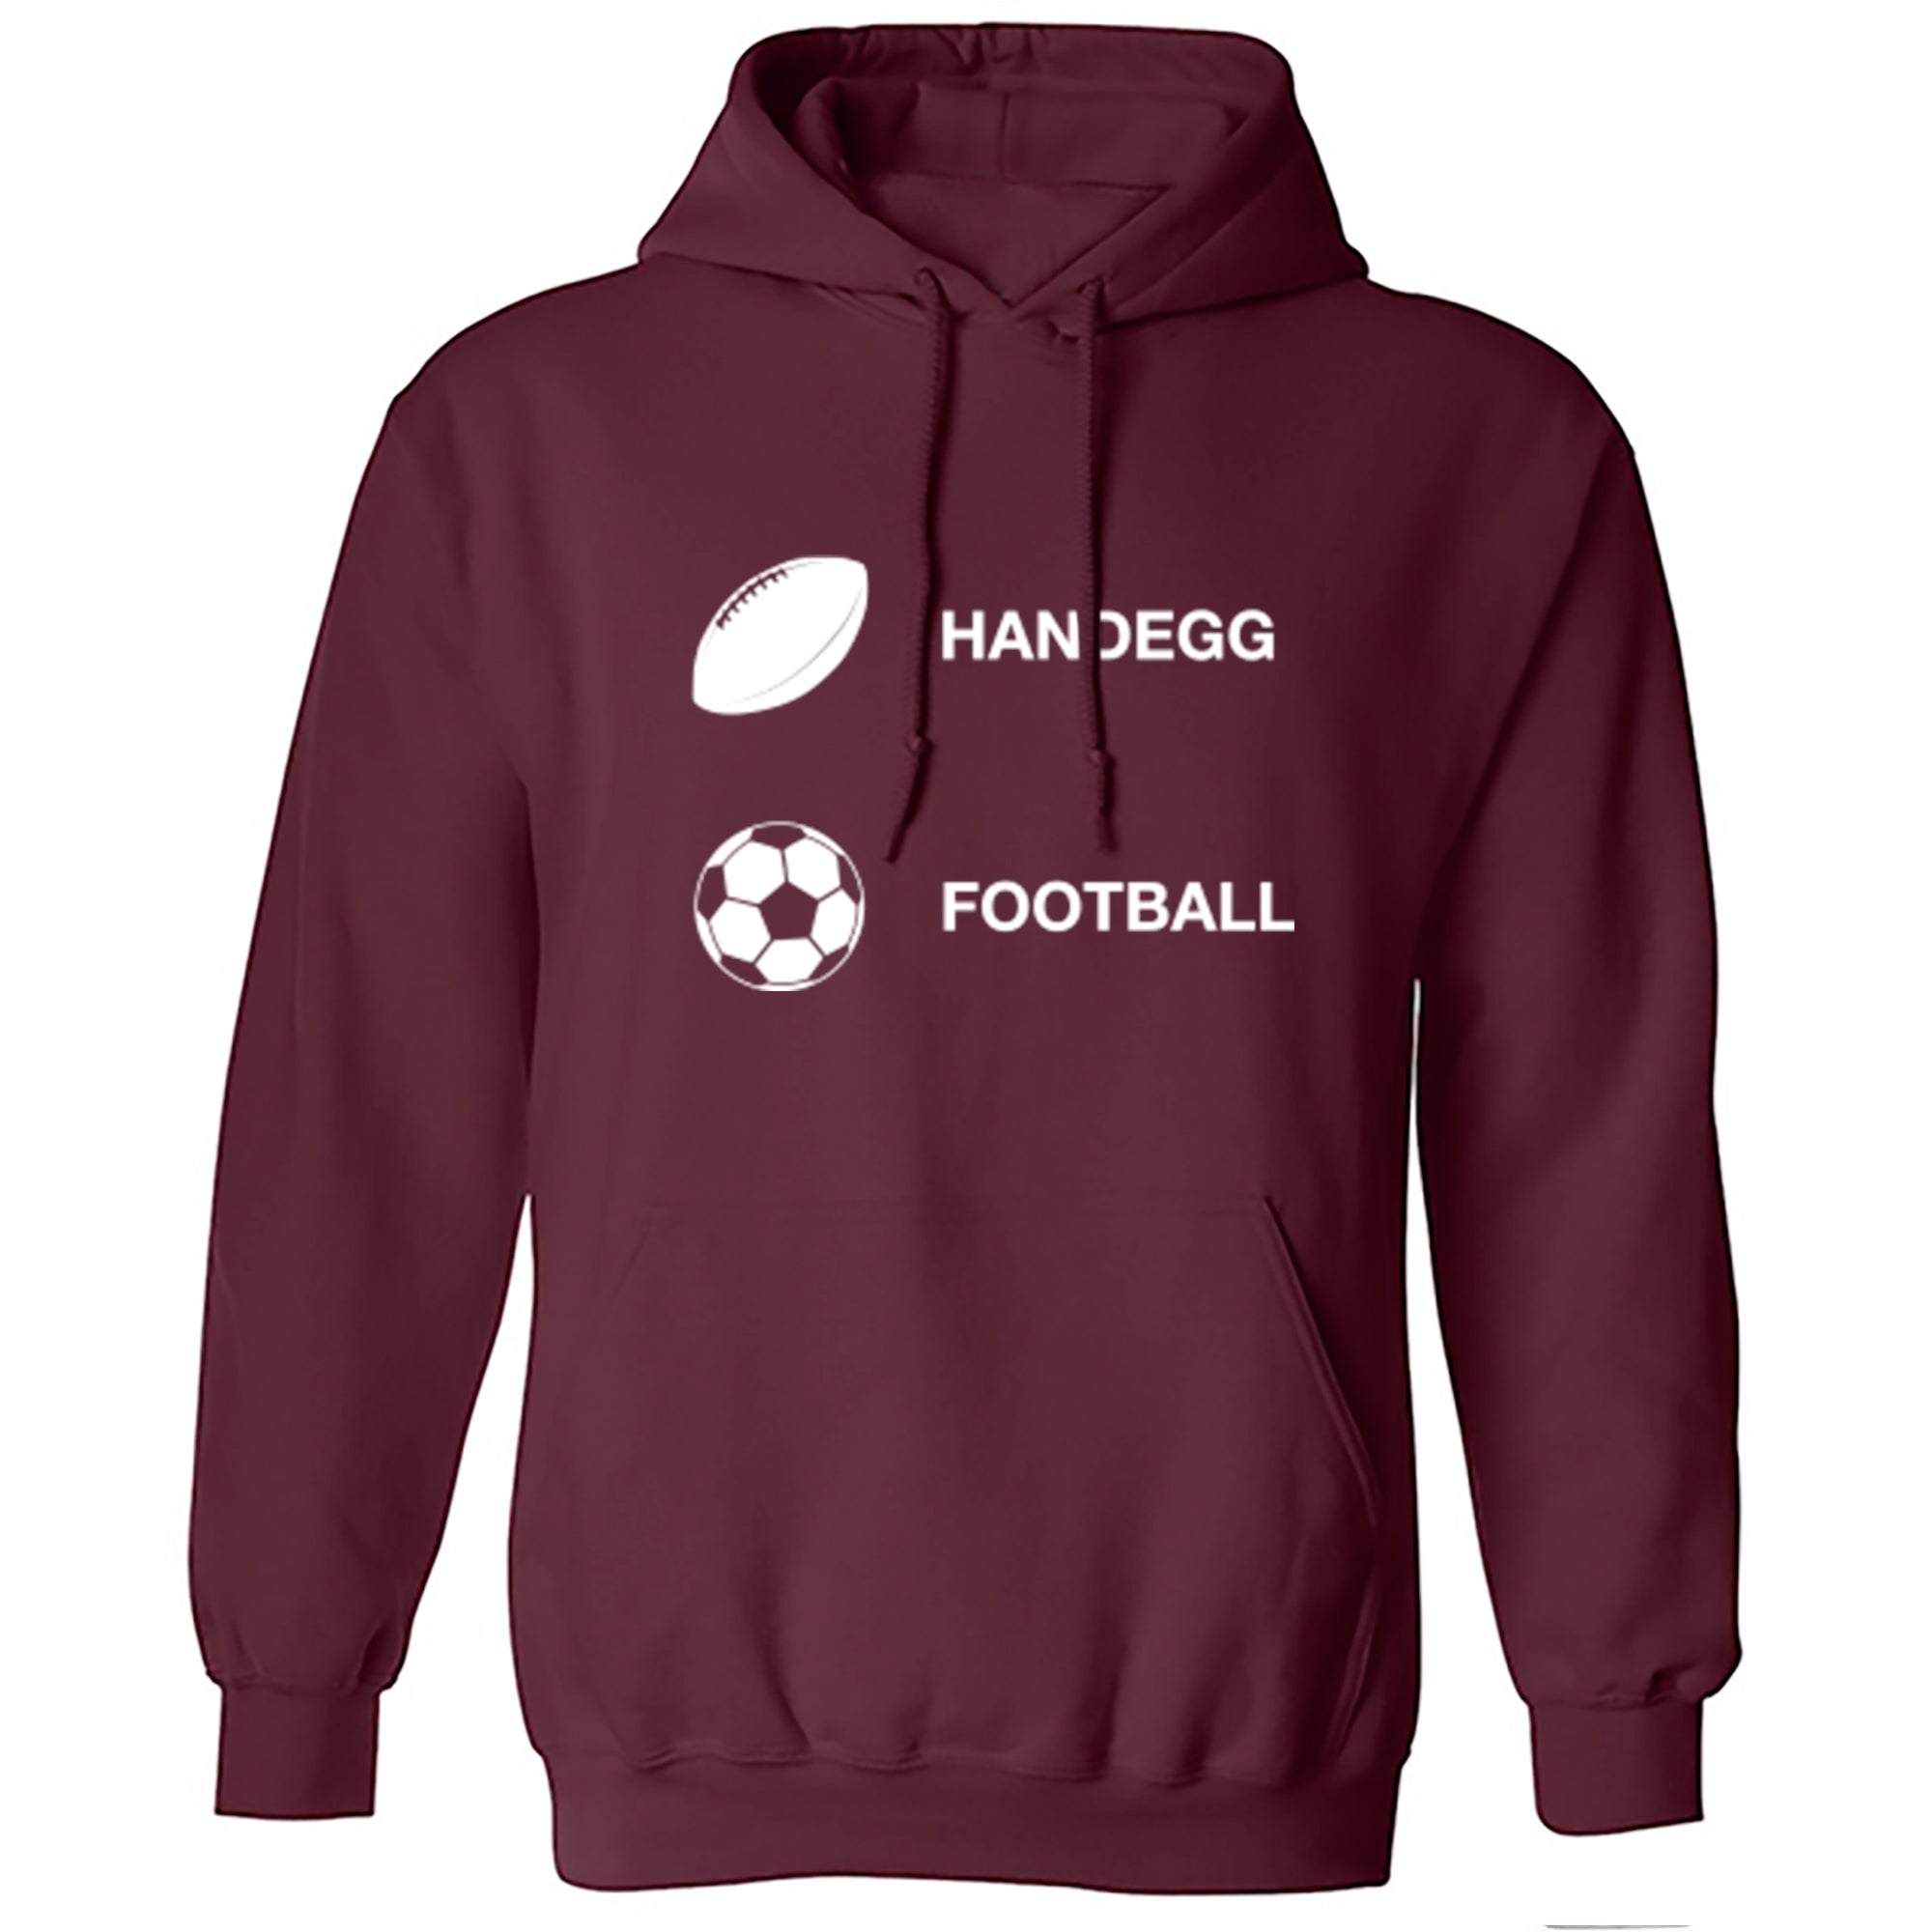 Handegg, Football Unisex Hoodie A0085 - Illustrated Identity Ltd.